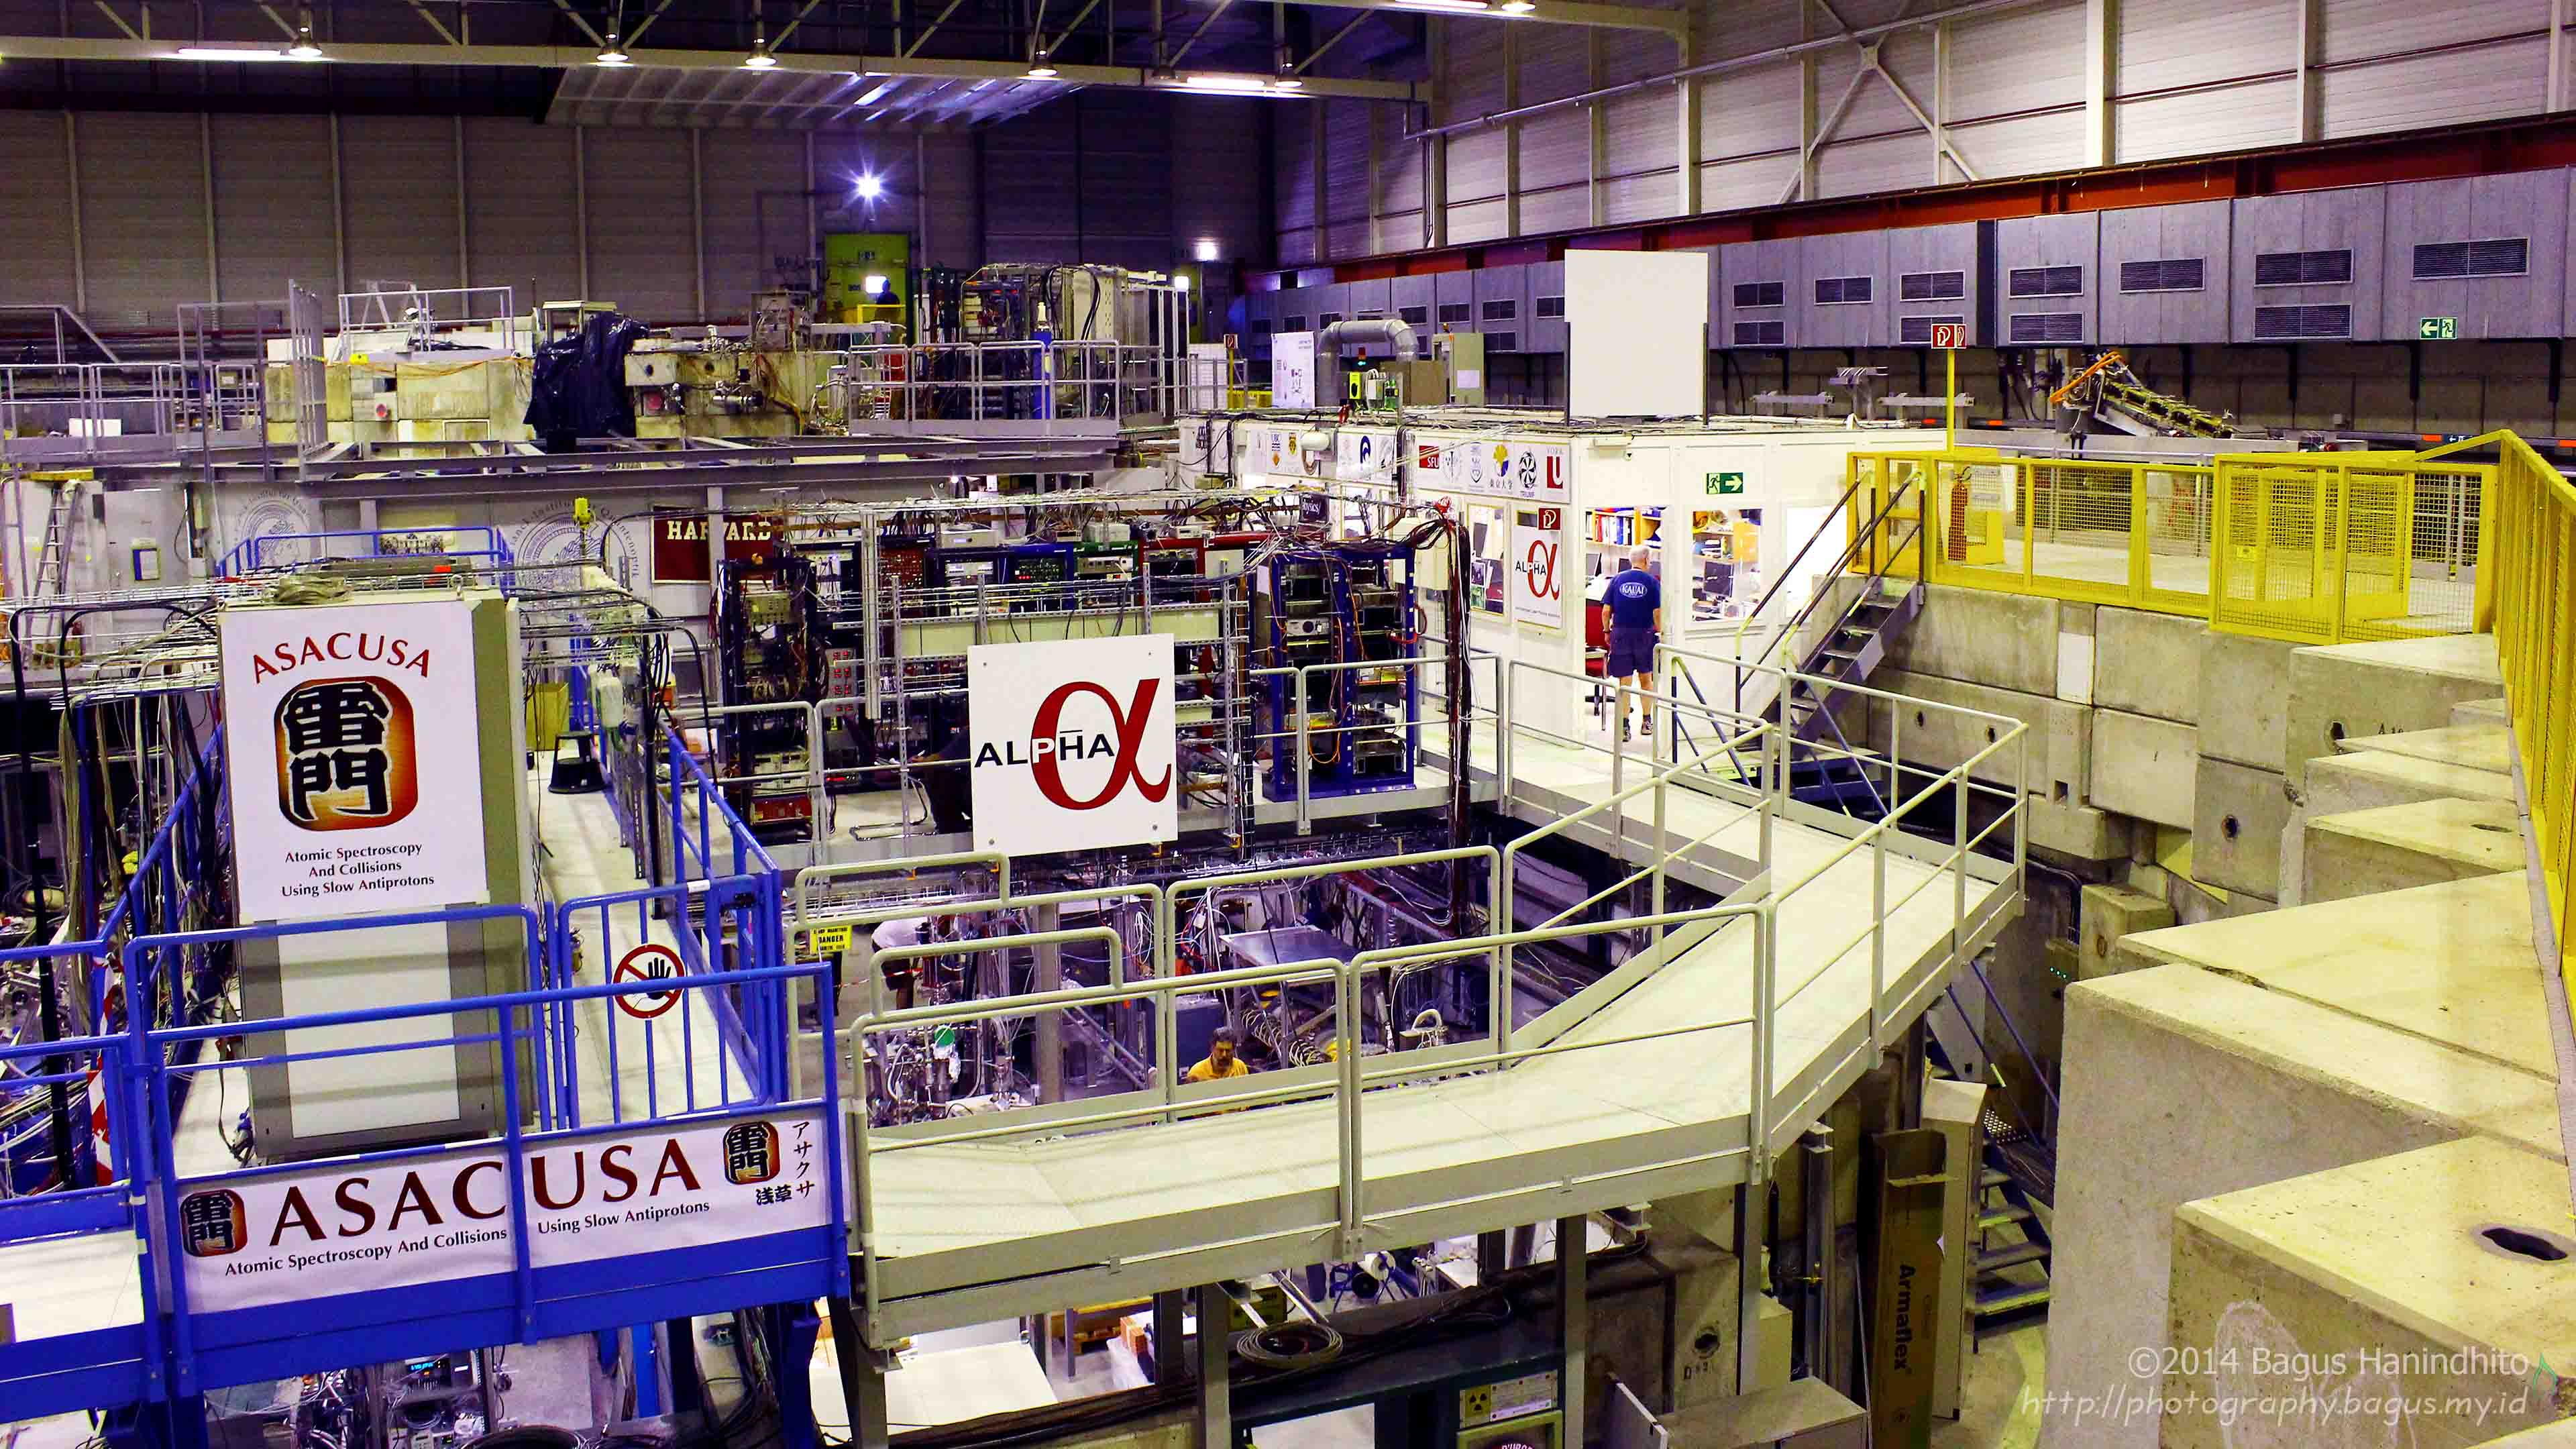 The CERN Antiproton Decelerator (AD) facilities at CERN Meyrin Site, Geneva.